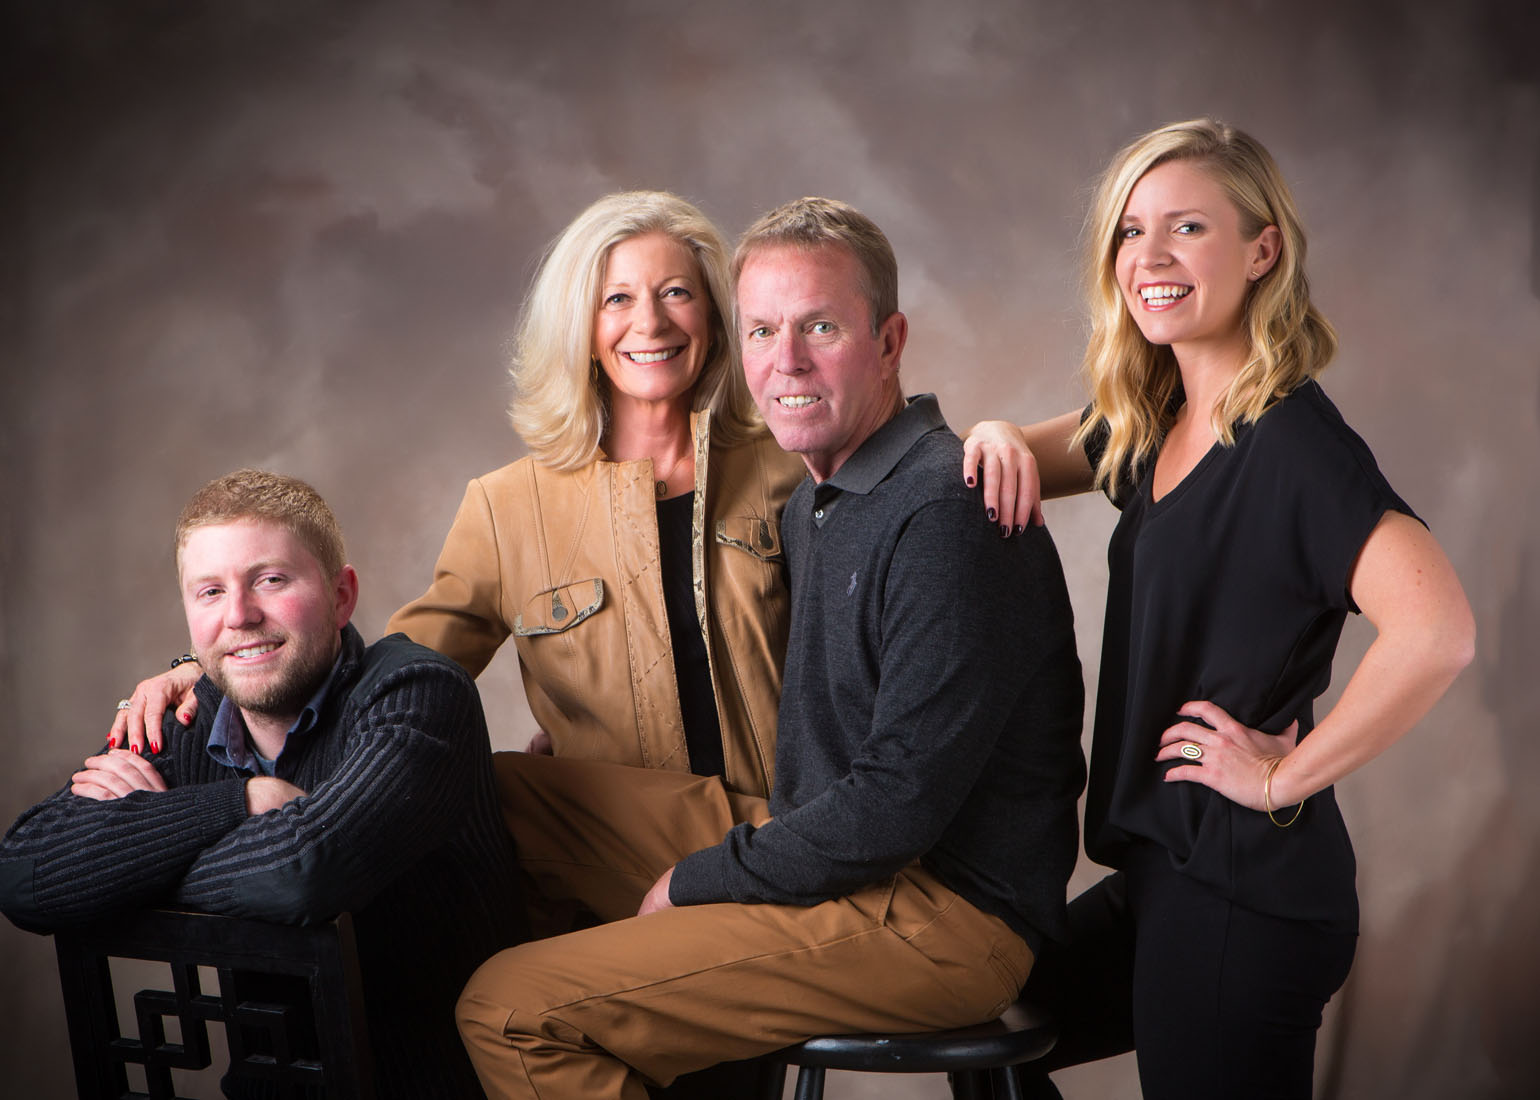 contemporary family photography in portrait studio in maine